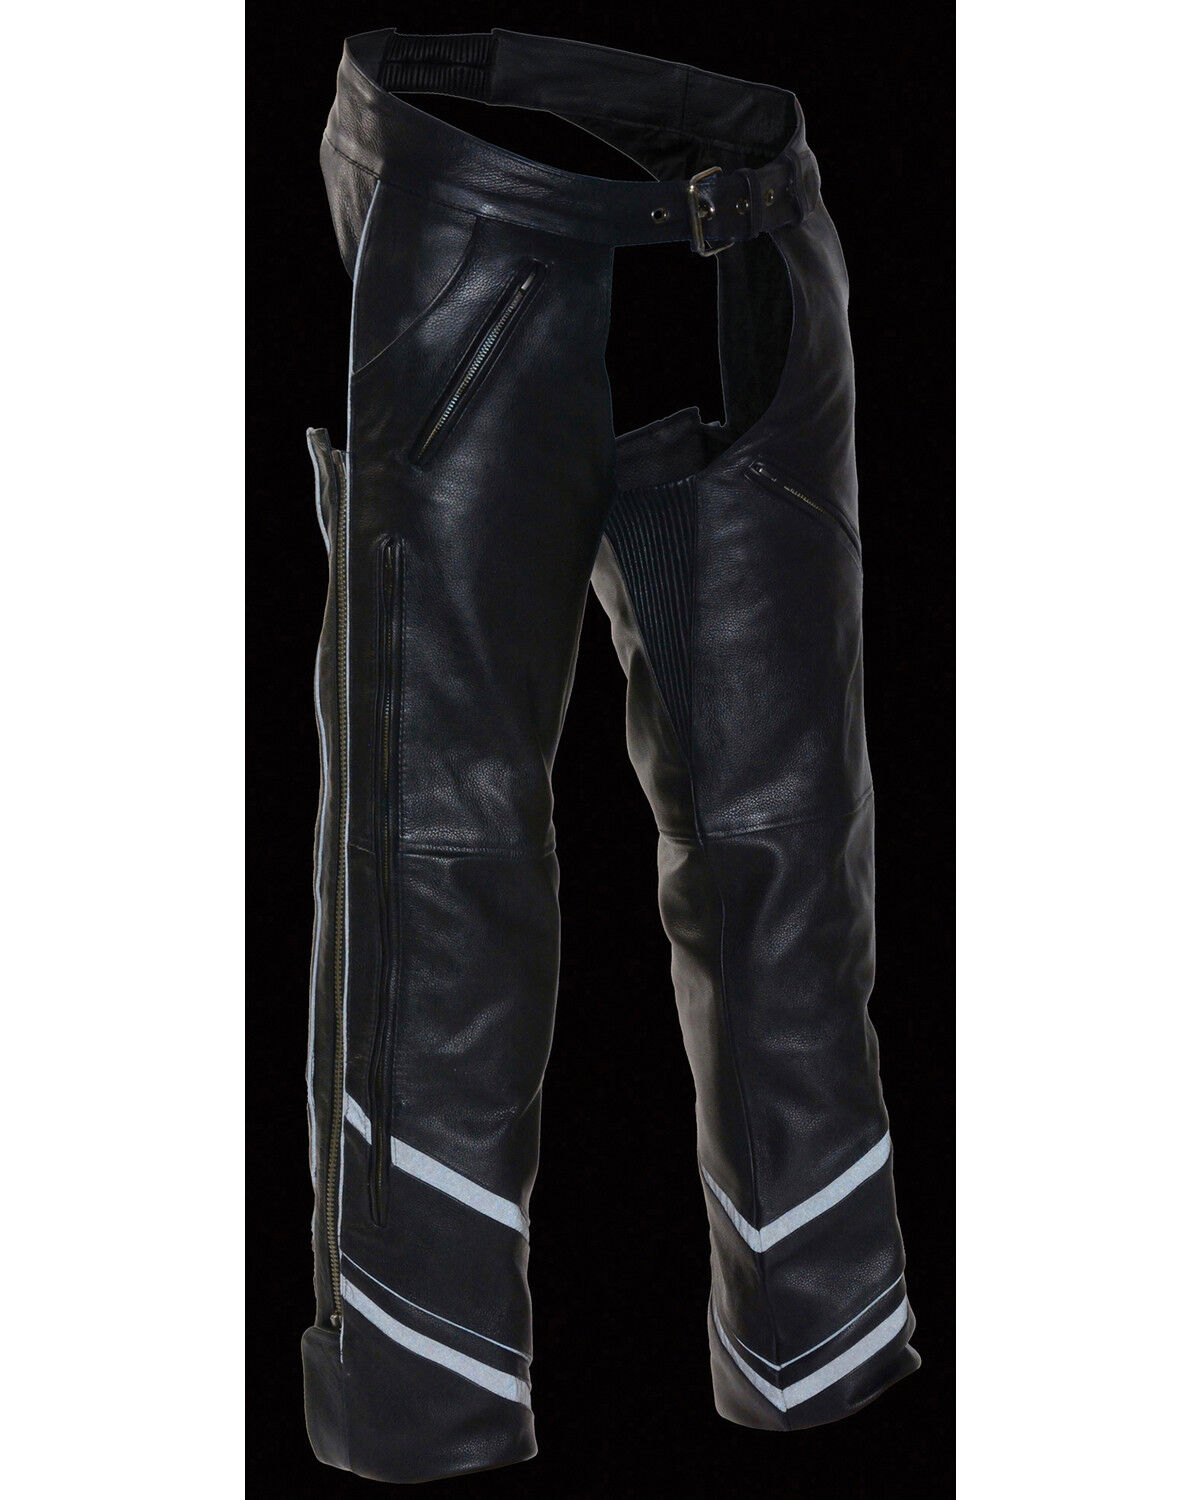 Black, Medium Milwaukee Mens Vented Leather Chaps